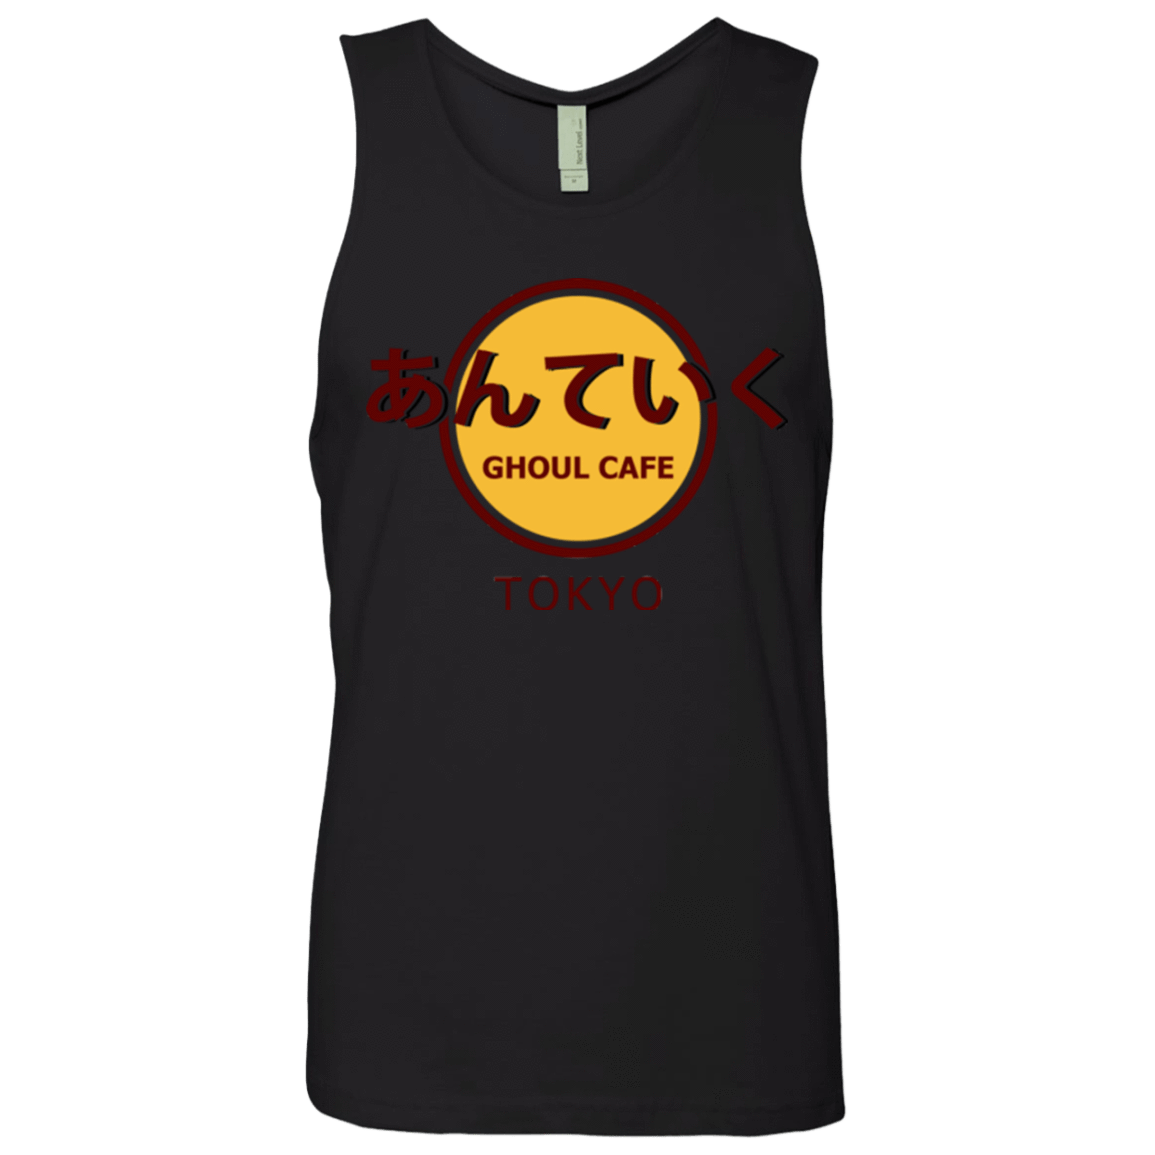 Ghoul cafe Men's Premium Tank Top